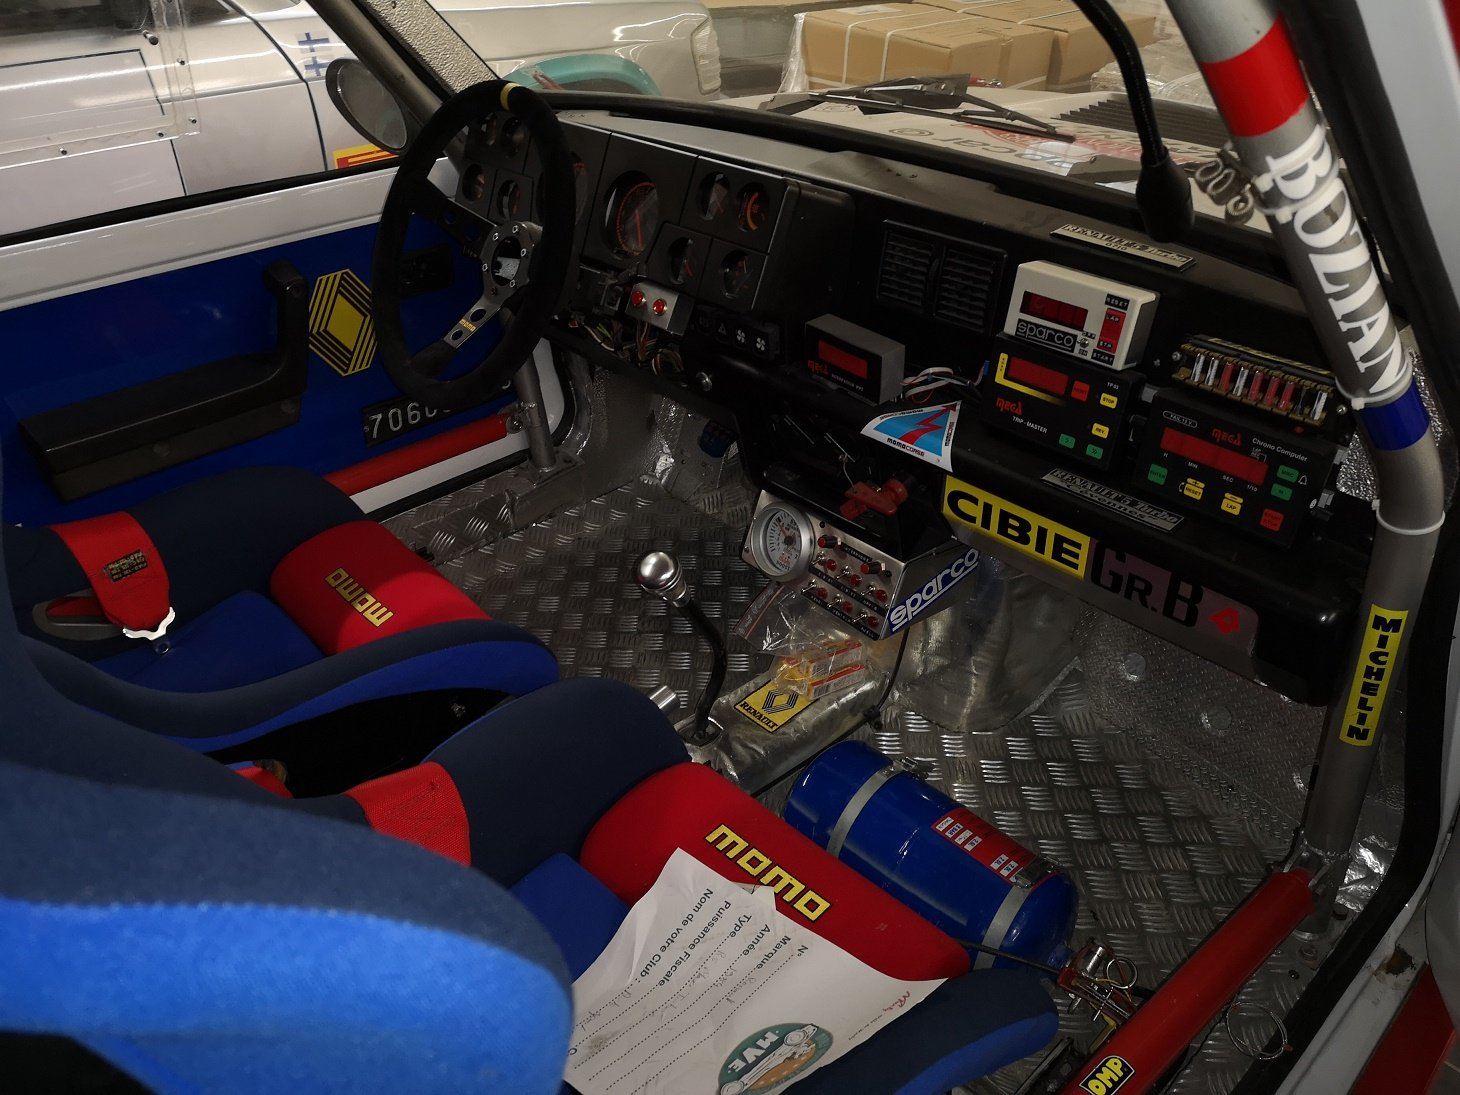 1981 R5 TURBO 1 de course For Sale (picture 4 of 6)